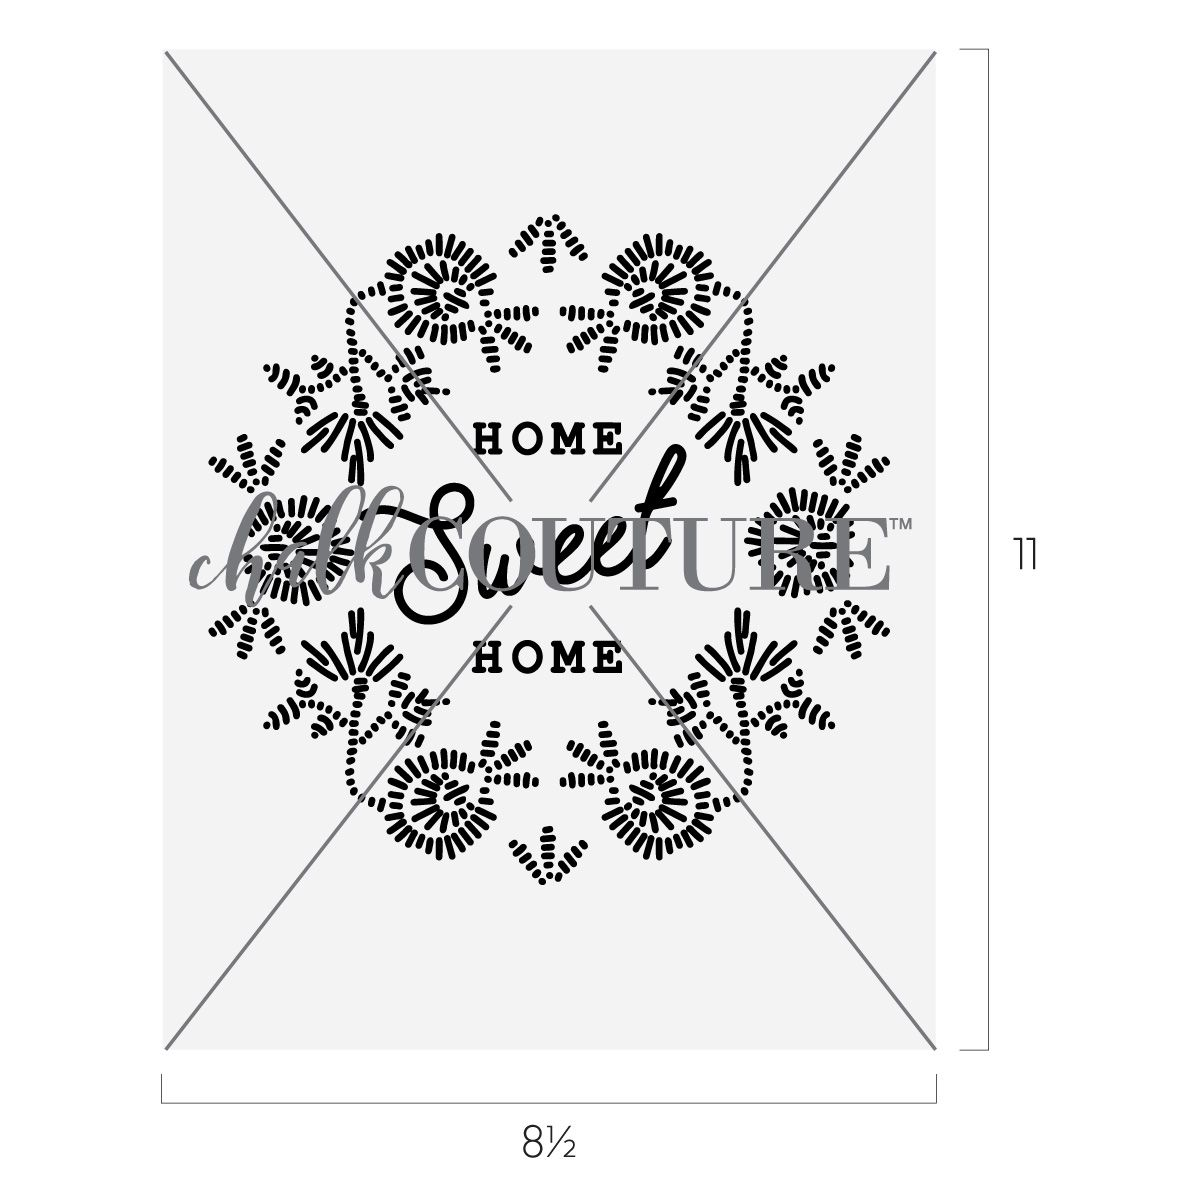 Handcrafted Home Sweet Home by Chalk Couture in 2020